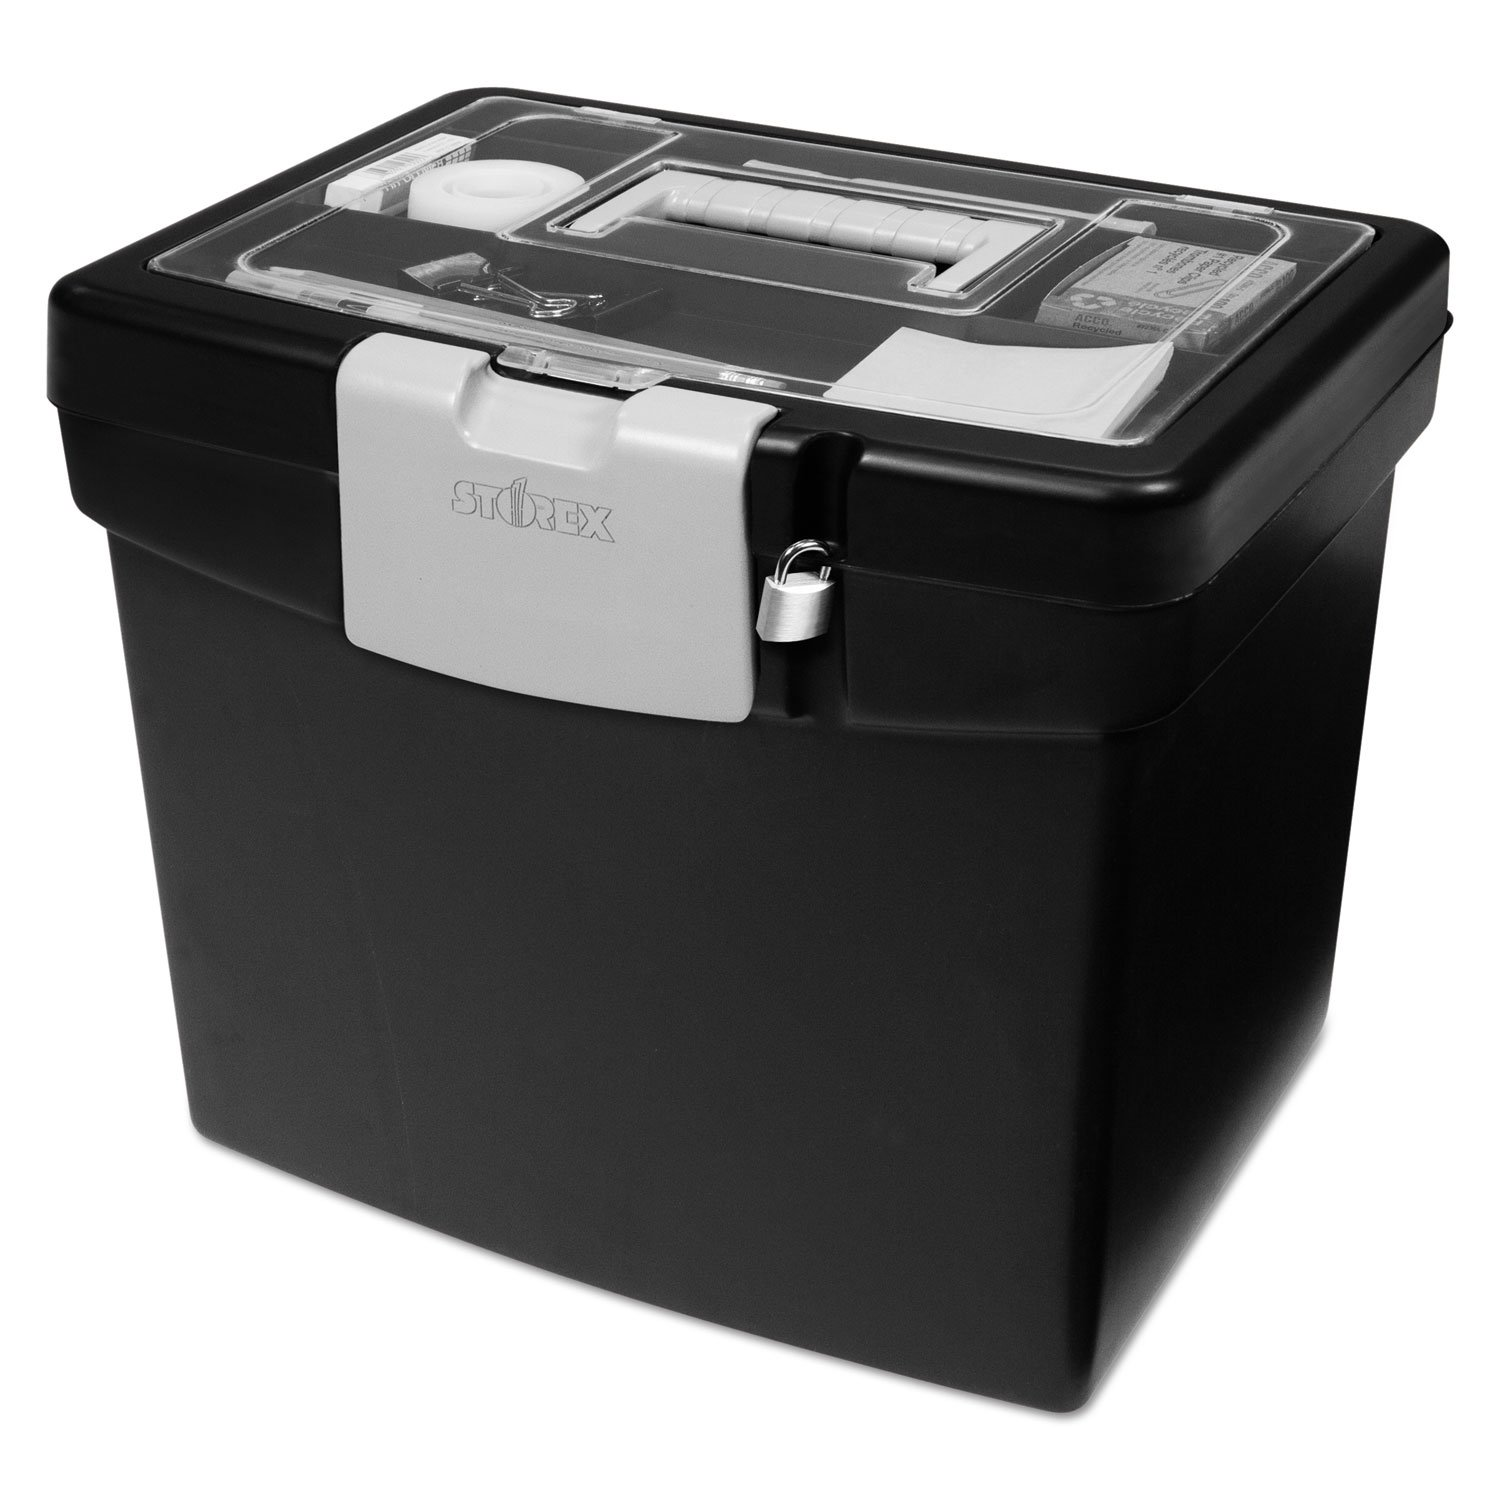 Storex 61504U01C Portable File Box with Large Organizer Lid, 13 1/4 x 10 7/8 x 11, Black